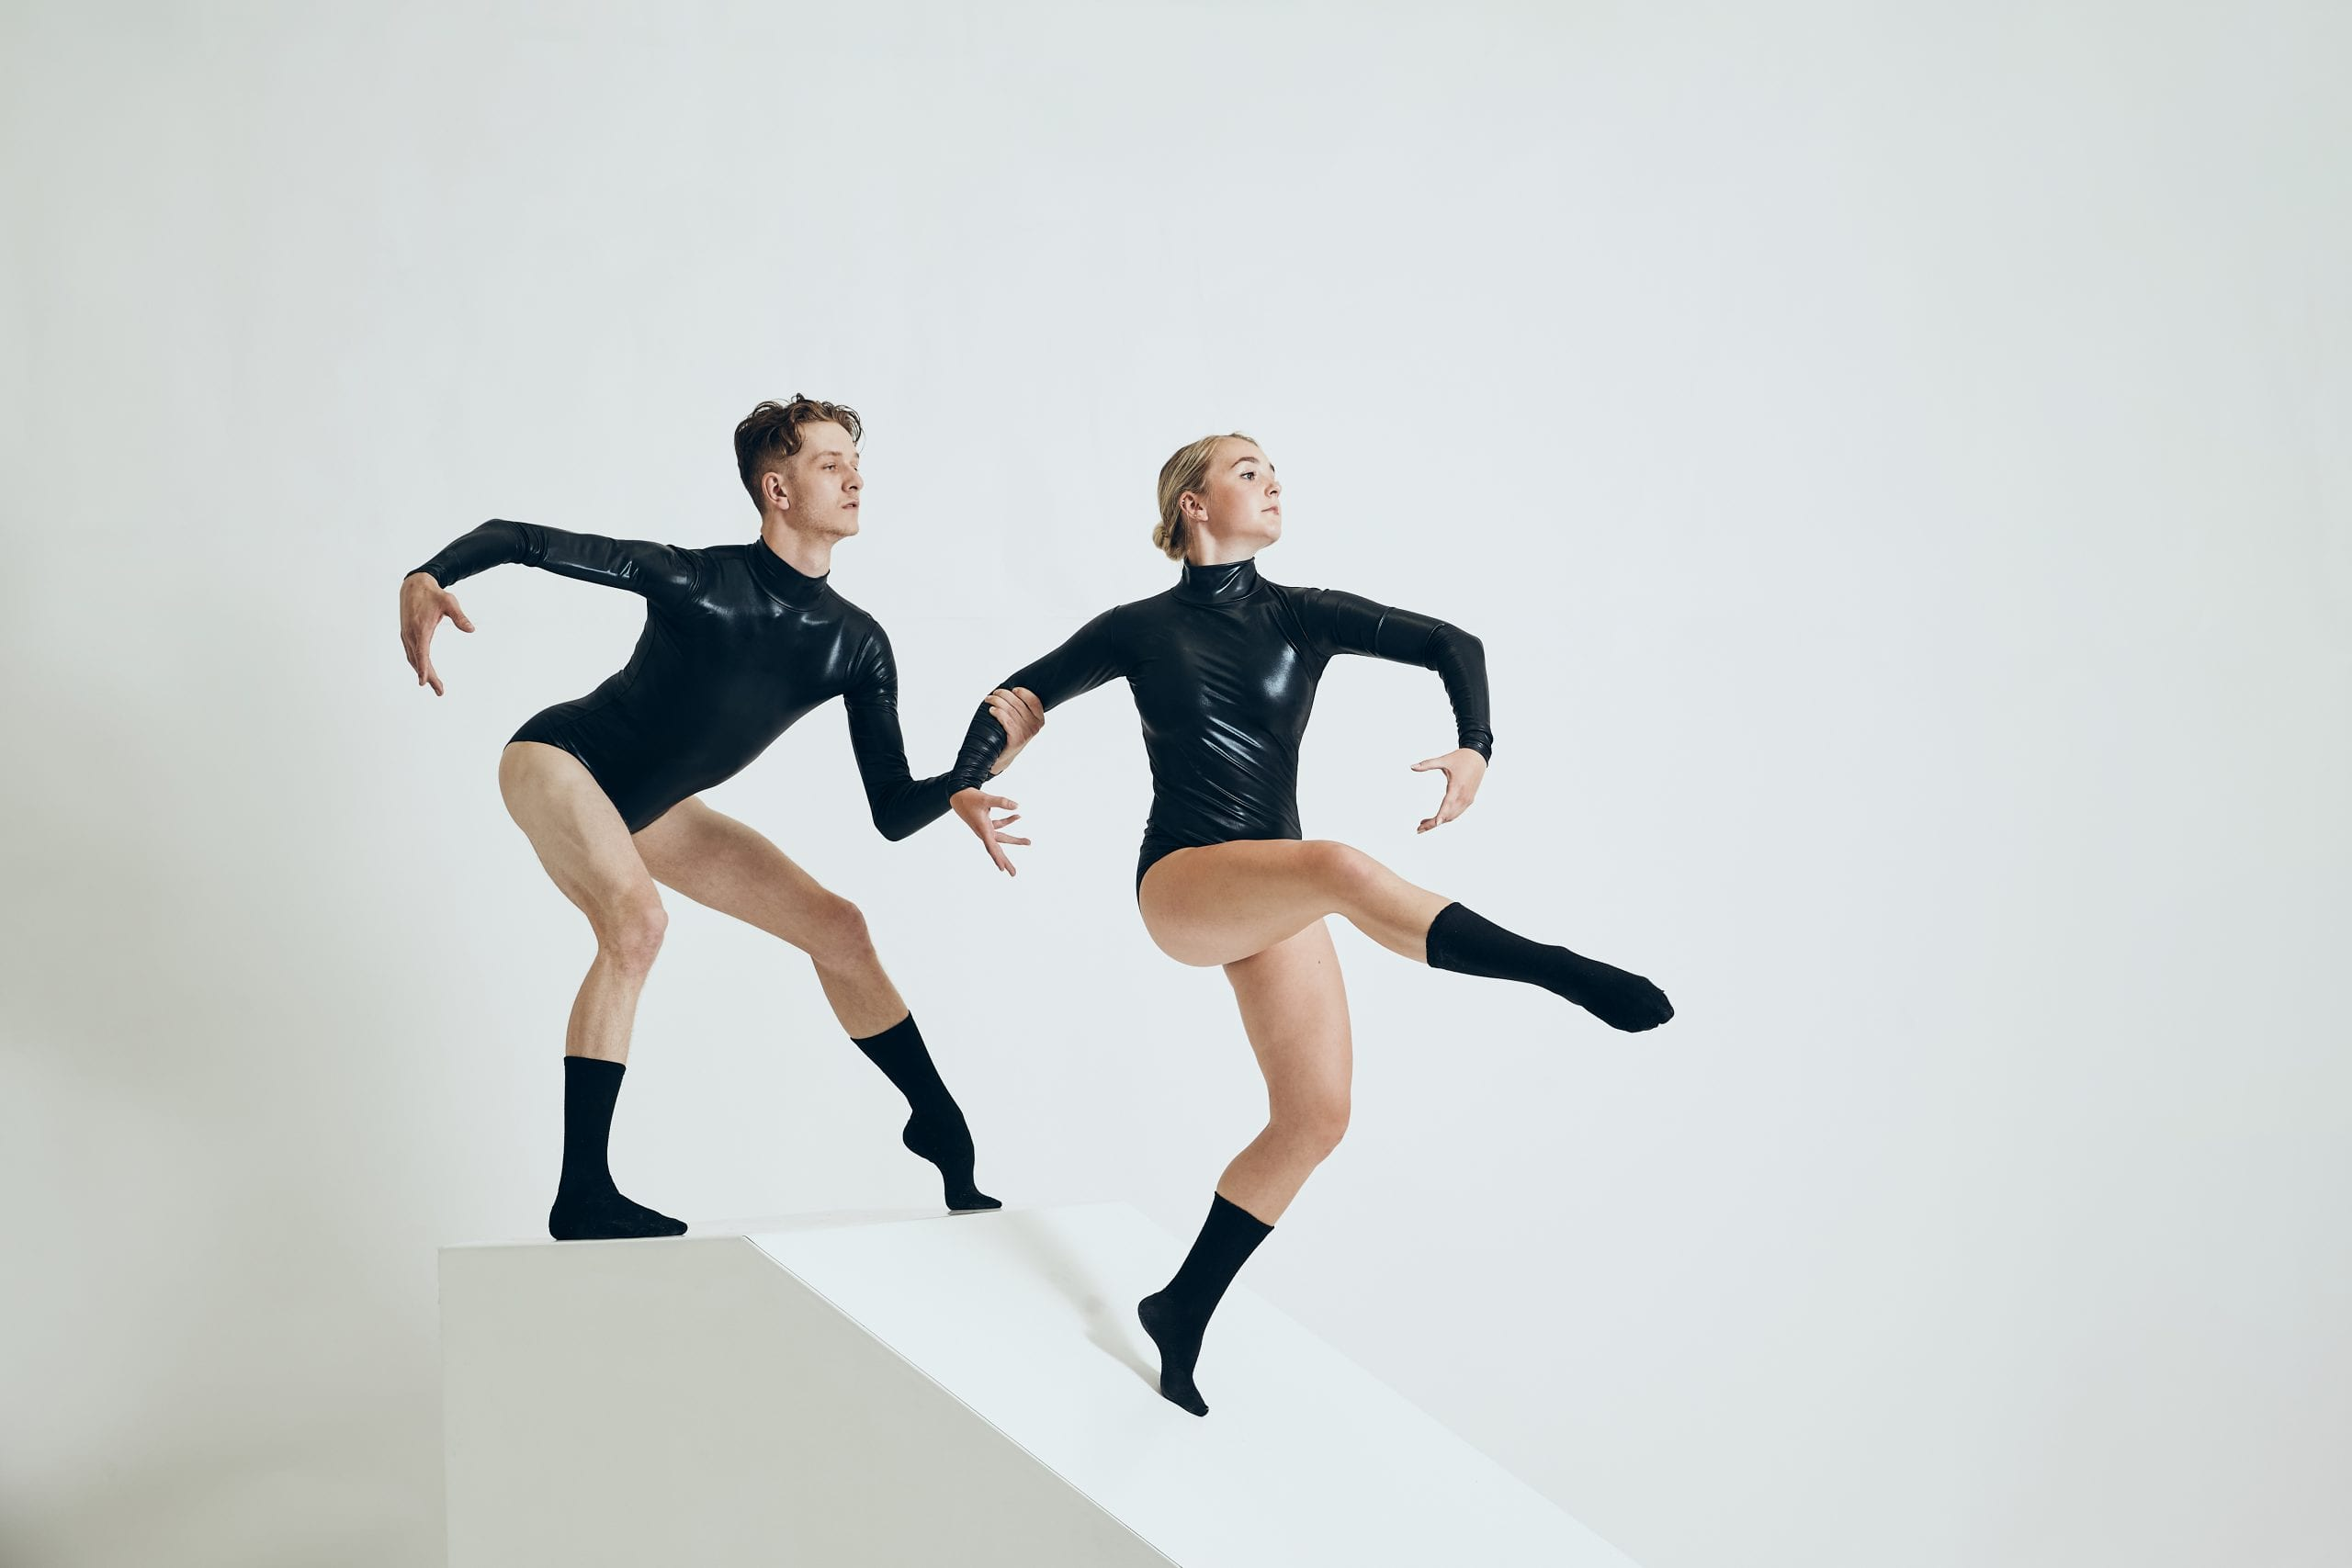 Two dance artists pose while wearing black songs and shiny black leotards